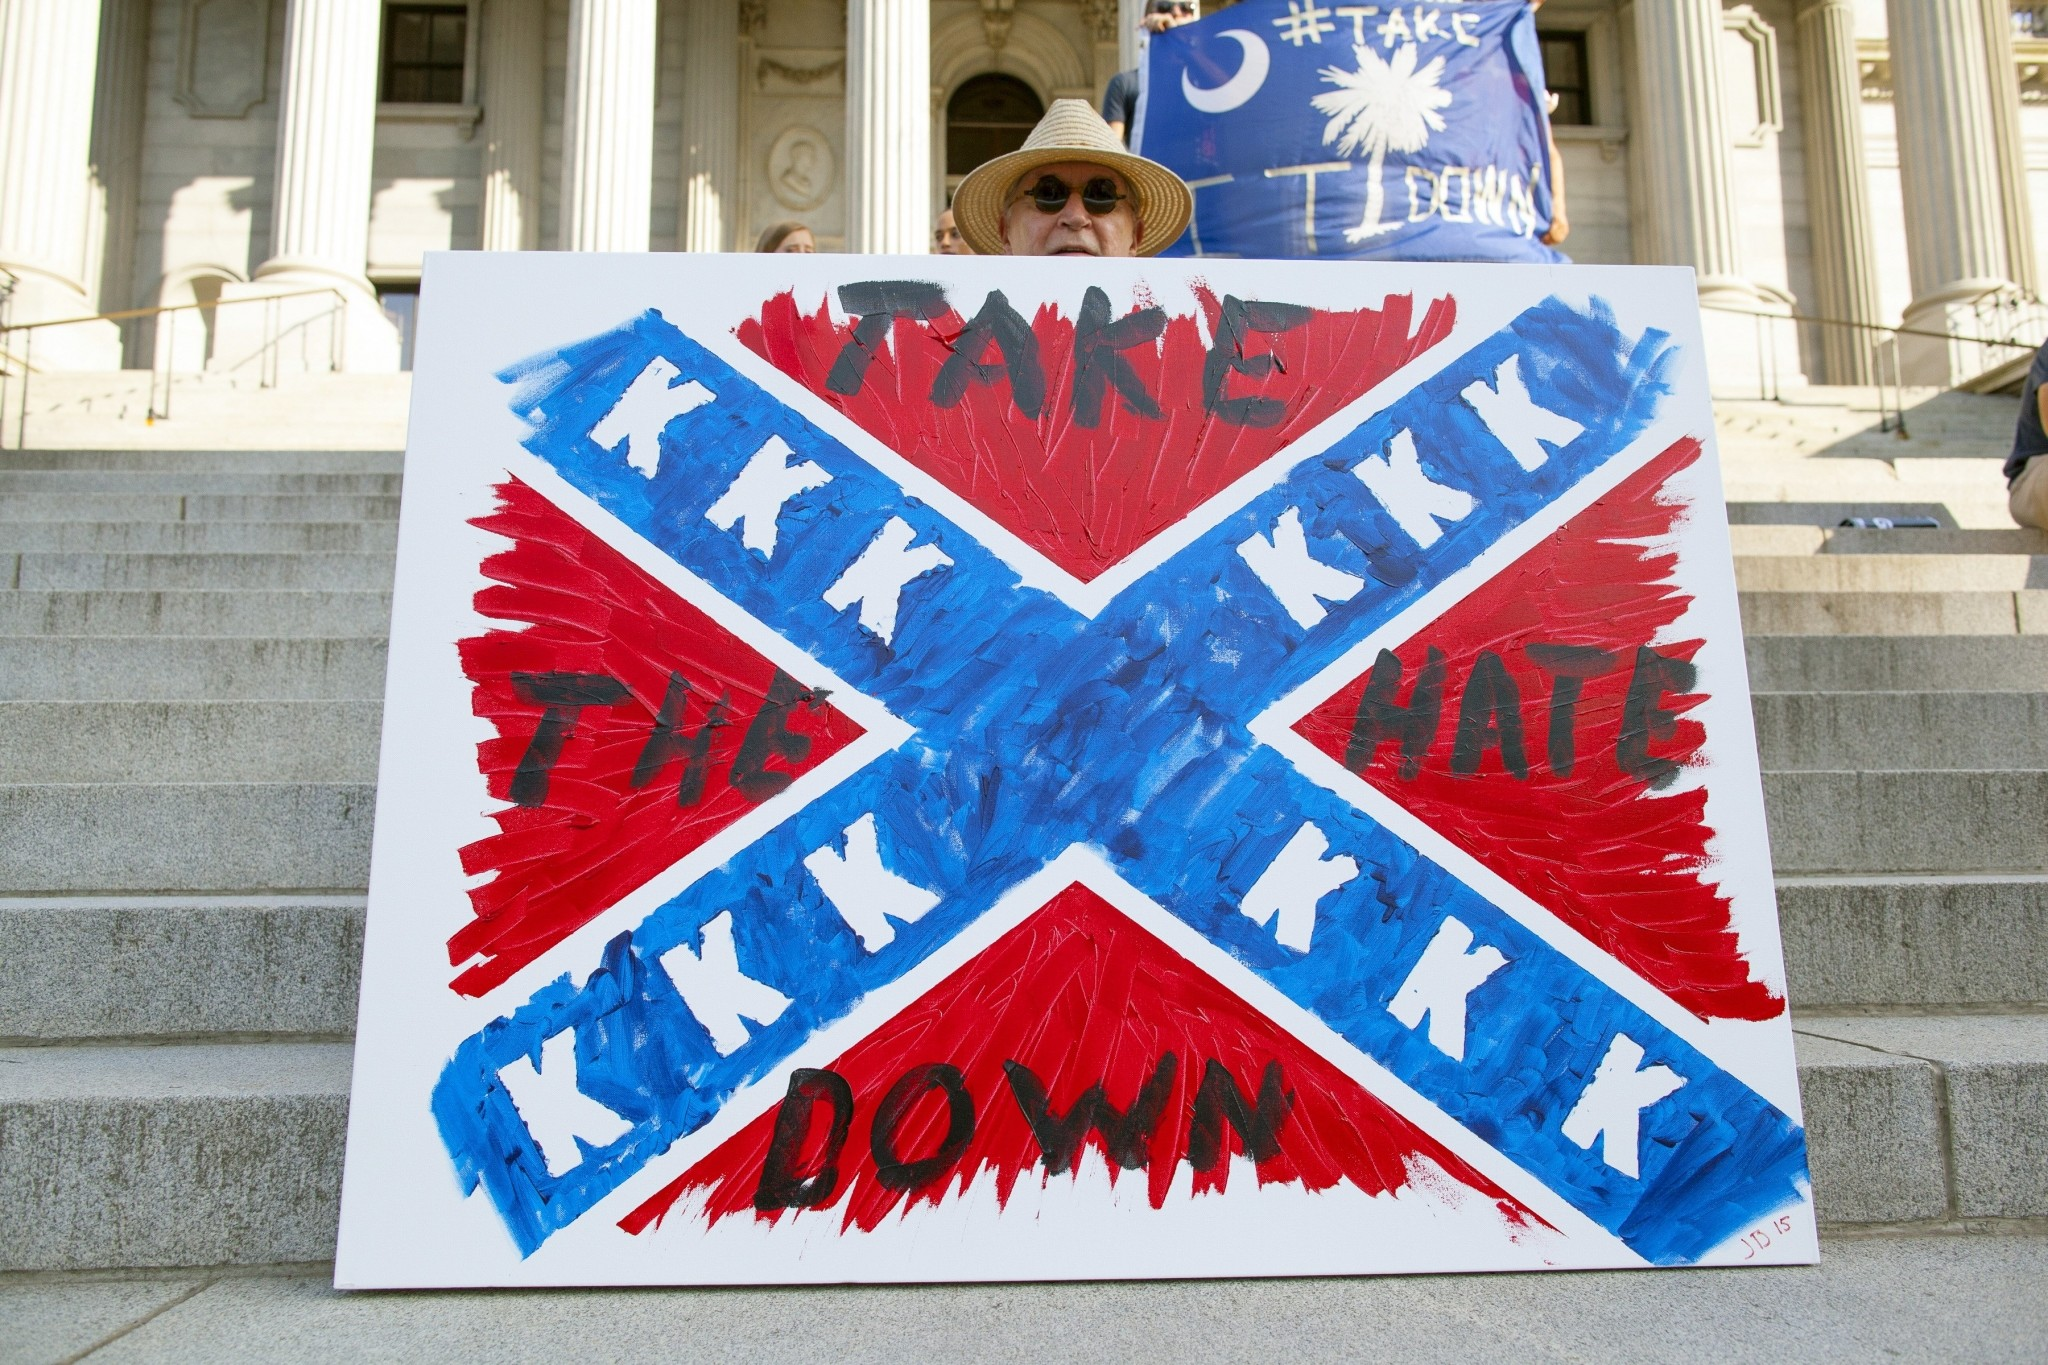 2048x1365 confederate flag wallpaper for desktop background